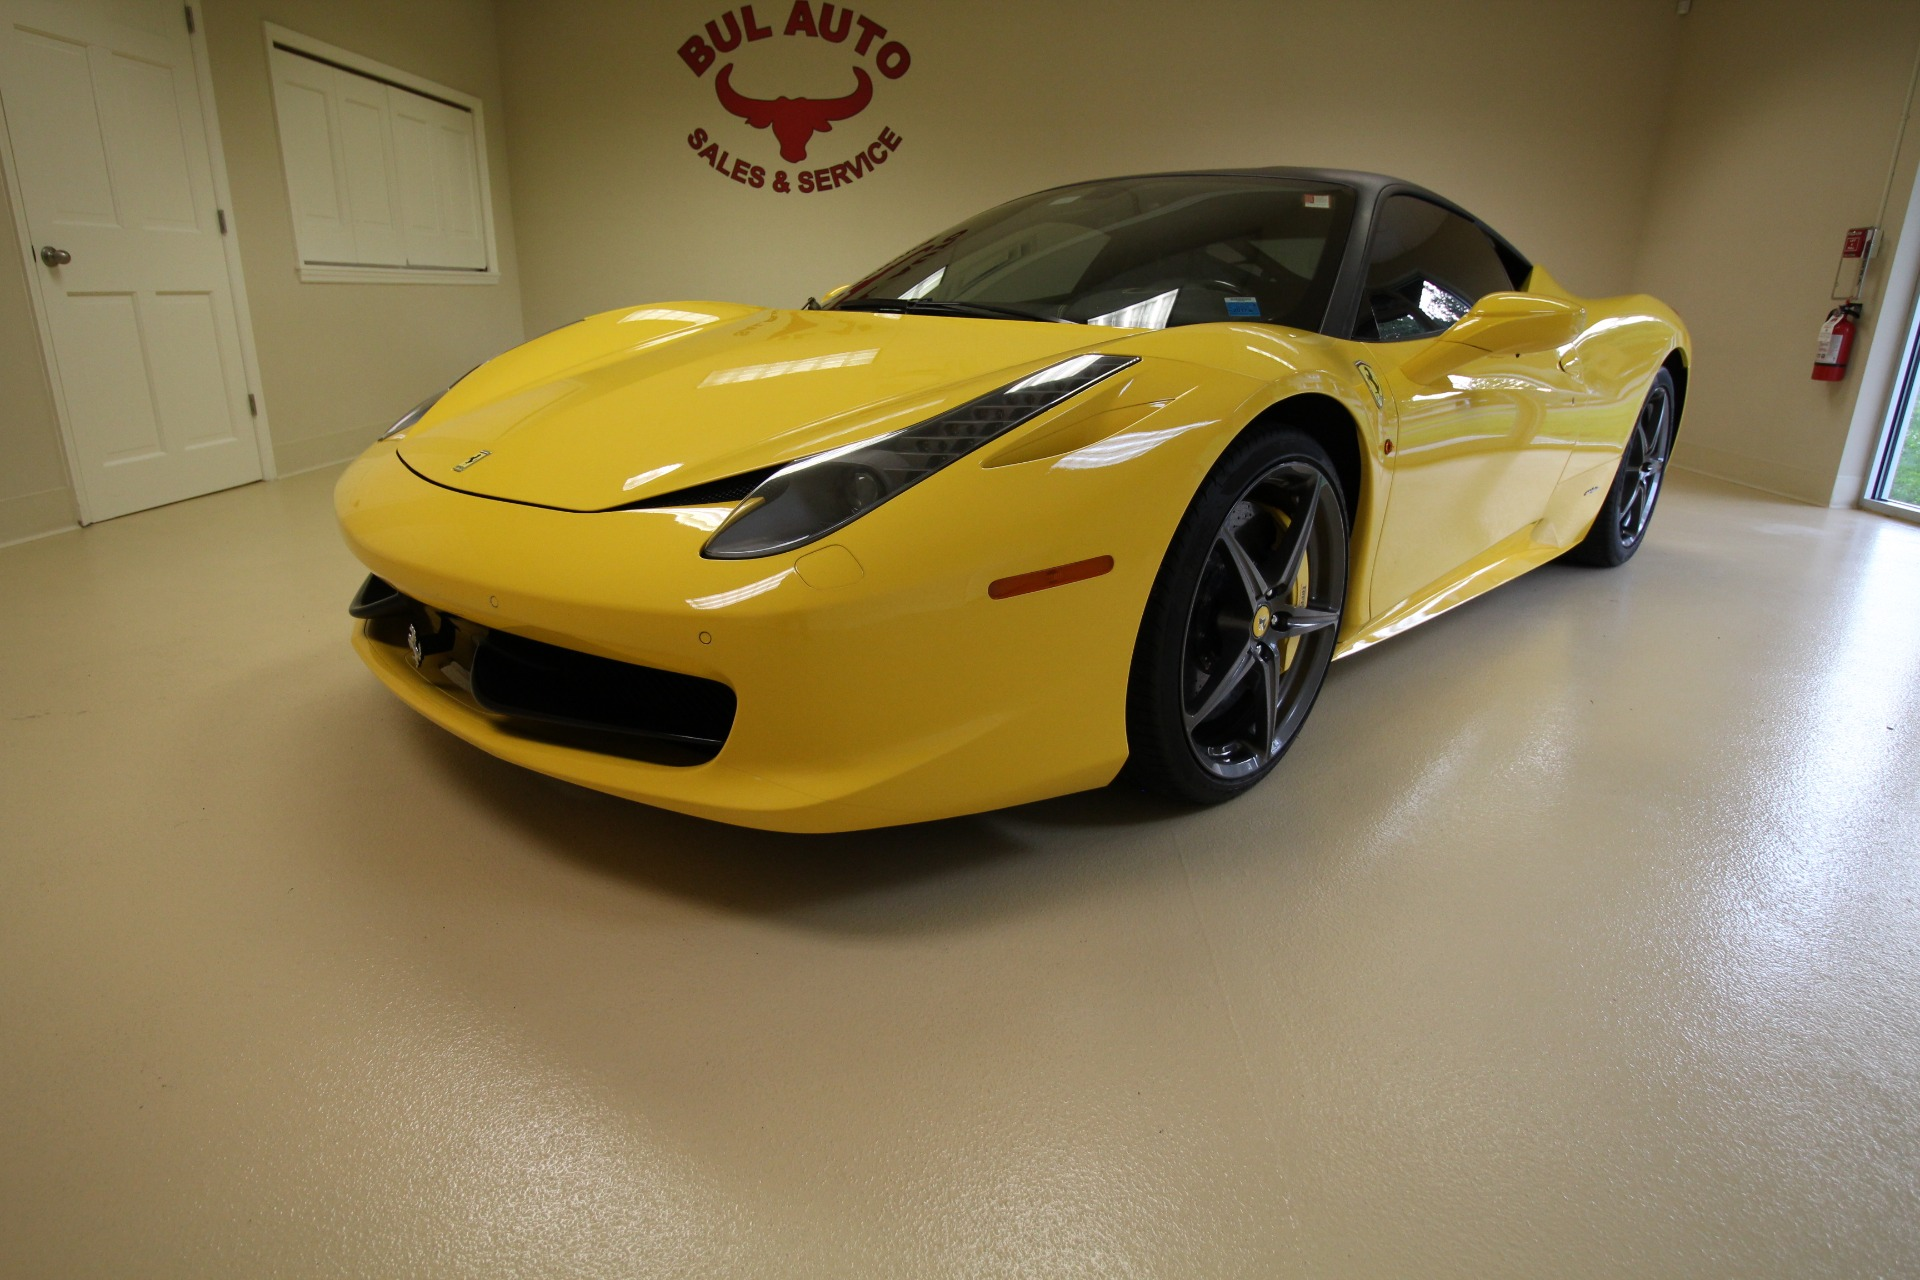 new yellow cars for sale near me used cars. Black Bedroom Furniture Sets. Home Design Ideas